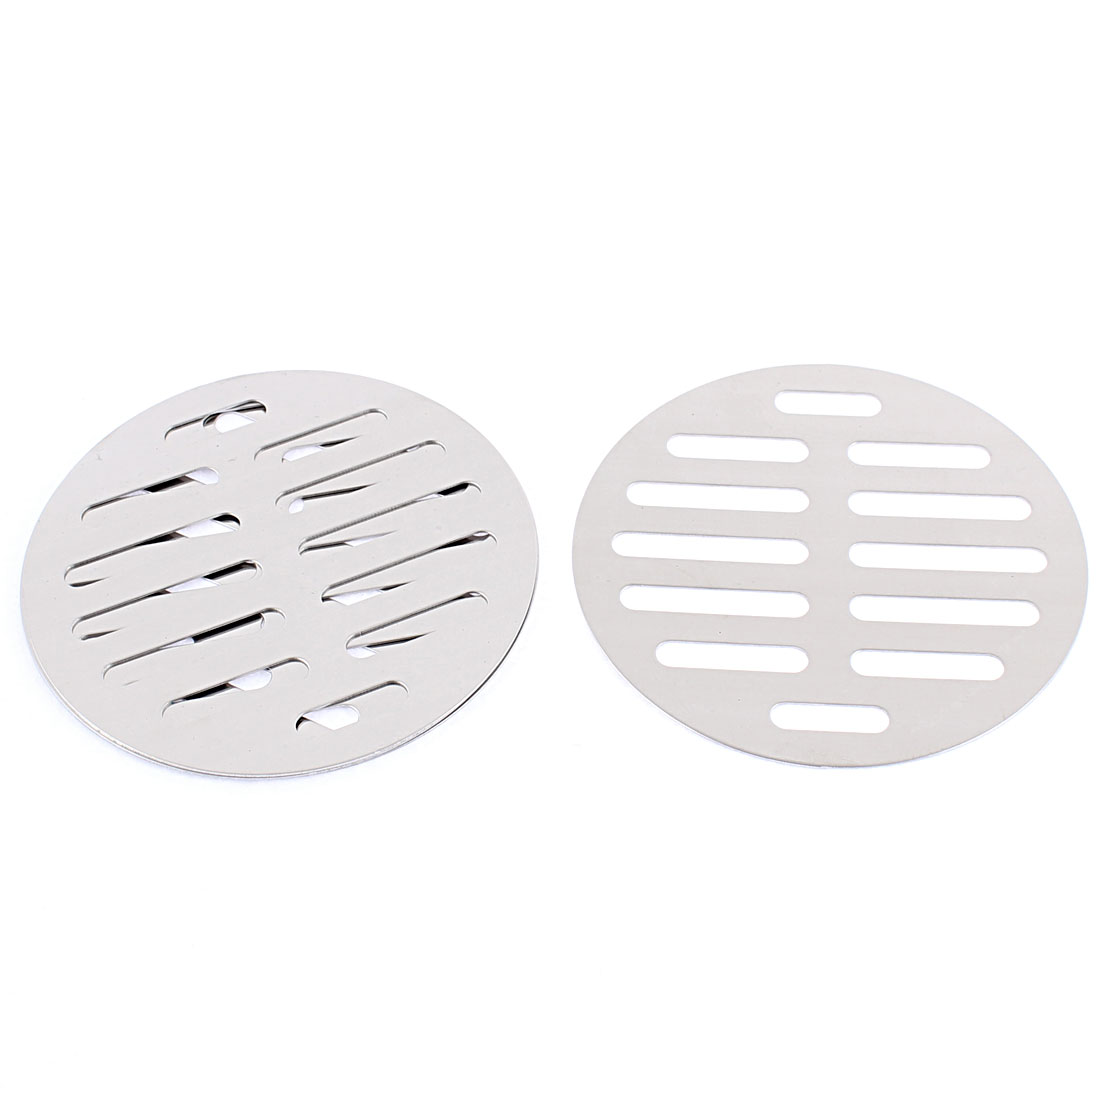 "Kitchen Bathroom Round Floor Drain Drainer Cover 4"" 10cm Dia 4Pcs"